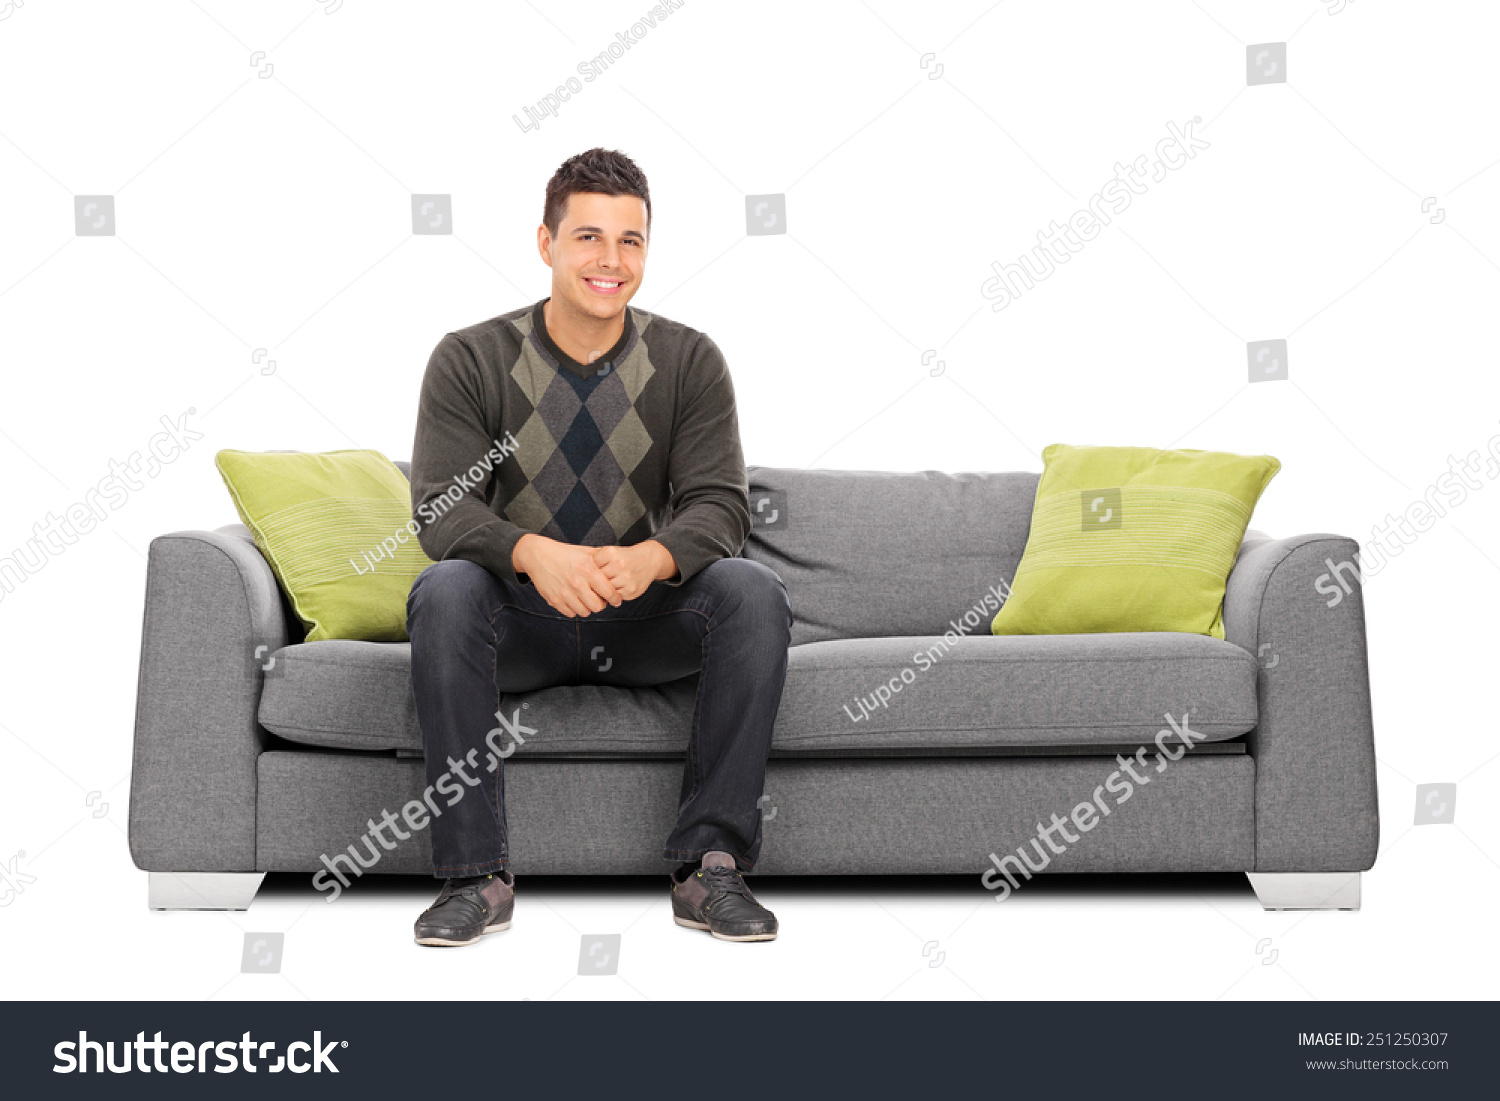 Royalty-free Cheerful young man sitting on a modern… #251250307 ...